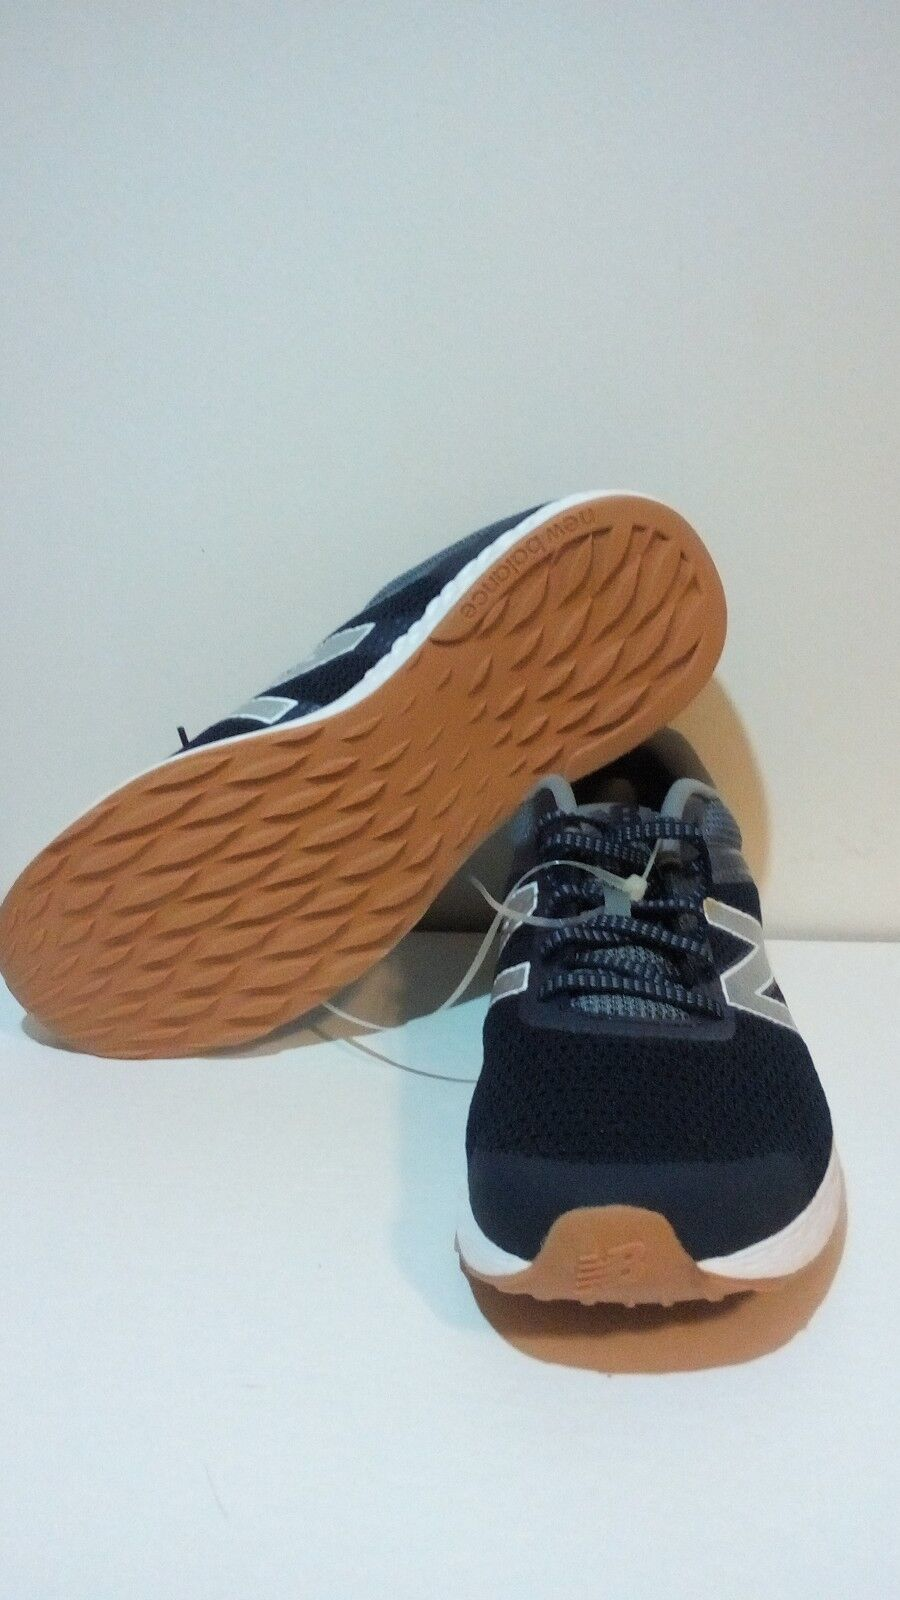 Men's New Balance 520v3 running shoes, navy/white color, size 11 M, comfortable